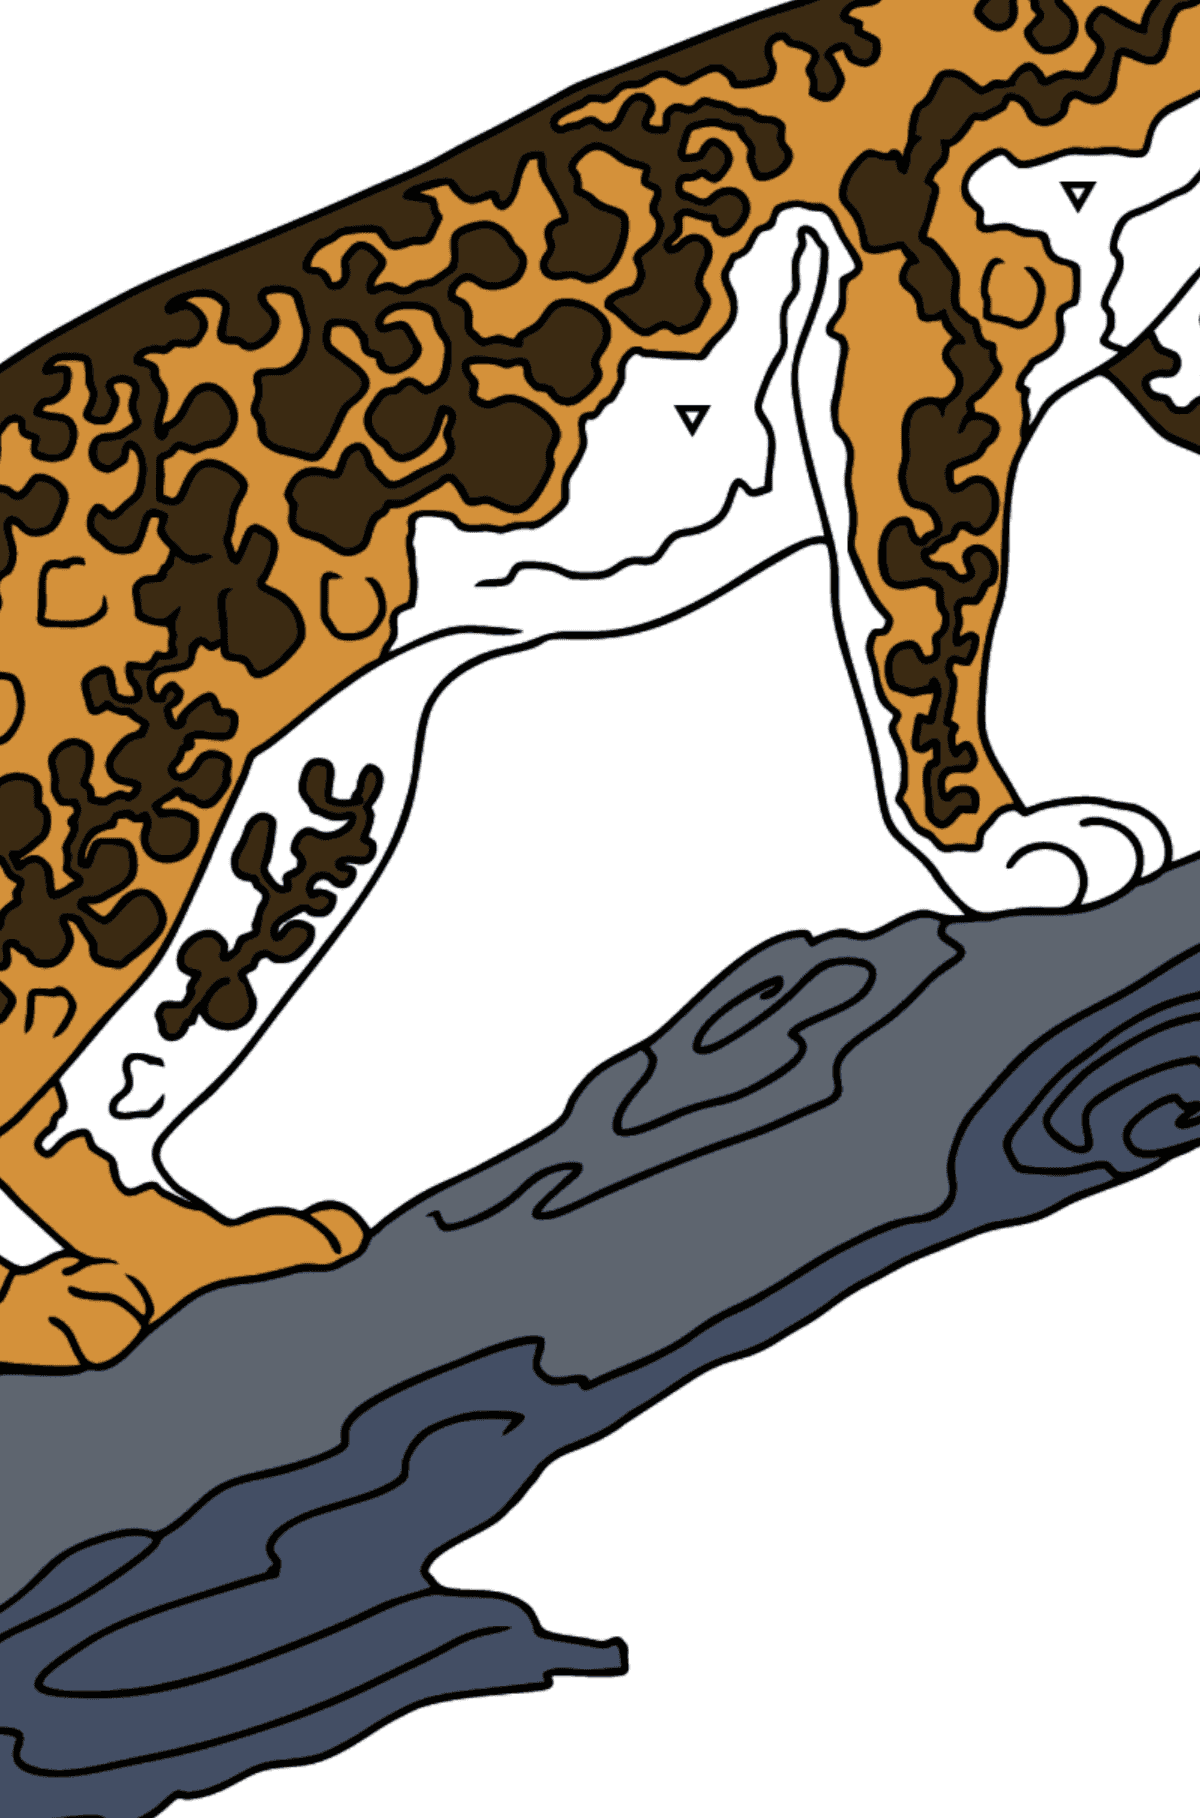 Coloring Page - A Leopard is Getting Ready for a Jump - Coloring by Symbols for Kids